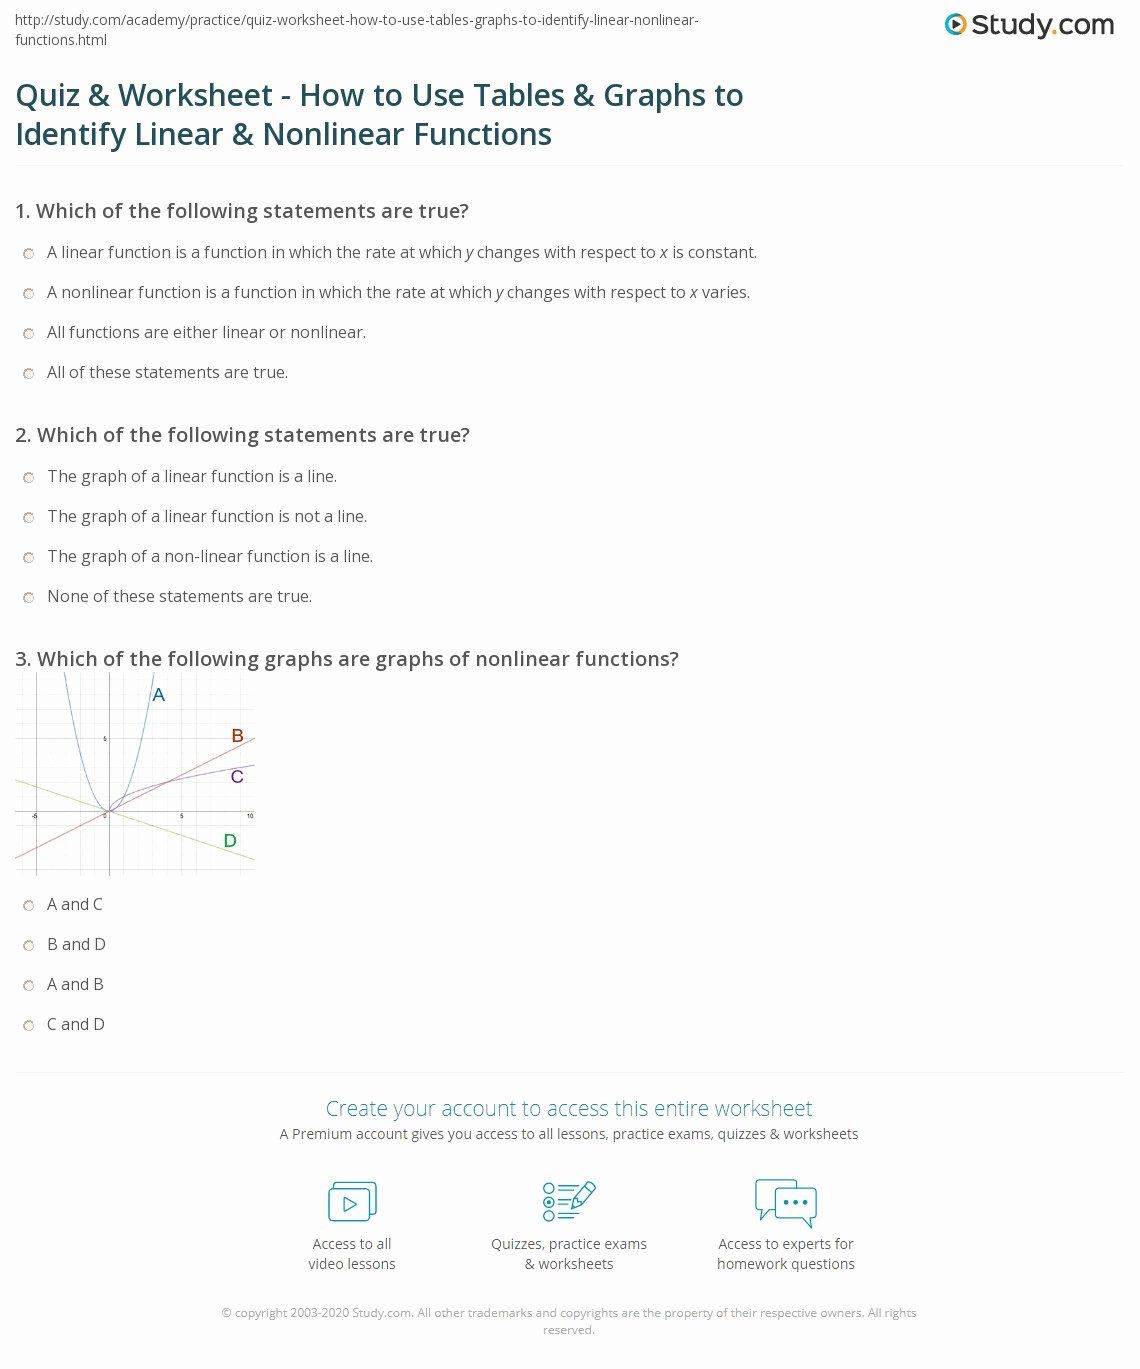 Linear and Nonlinear Functions Worksheet Free Quiz & Worksheet How to Use Tables & Graphs to Identify